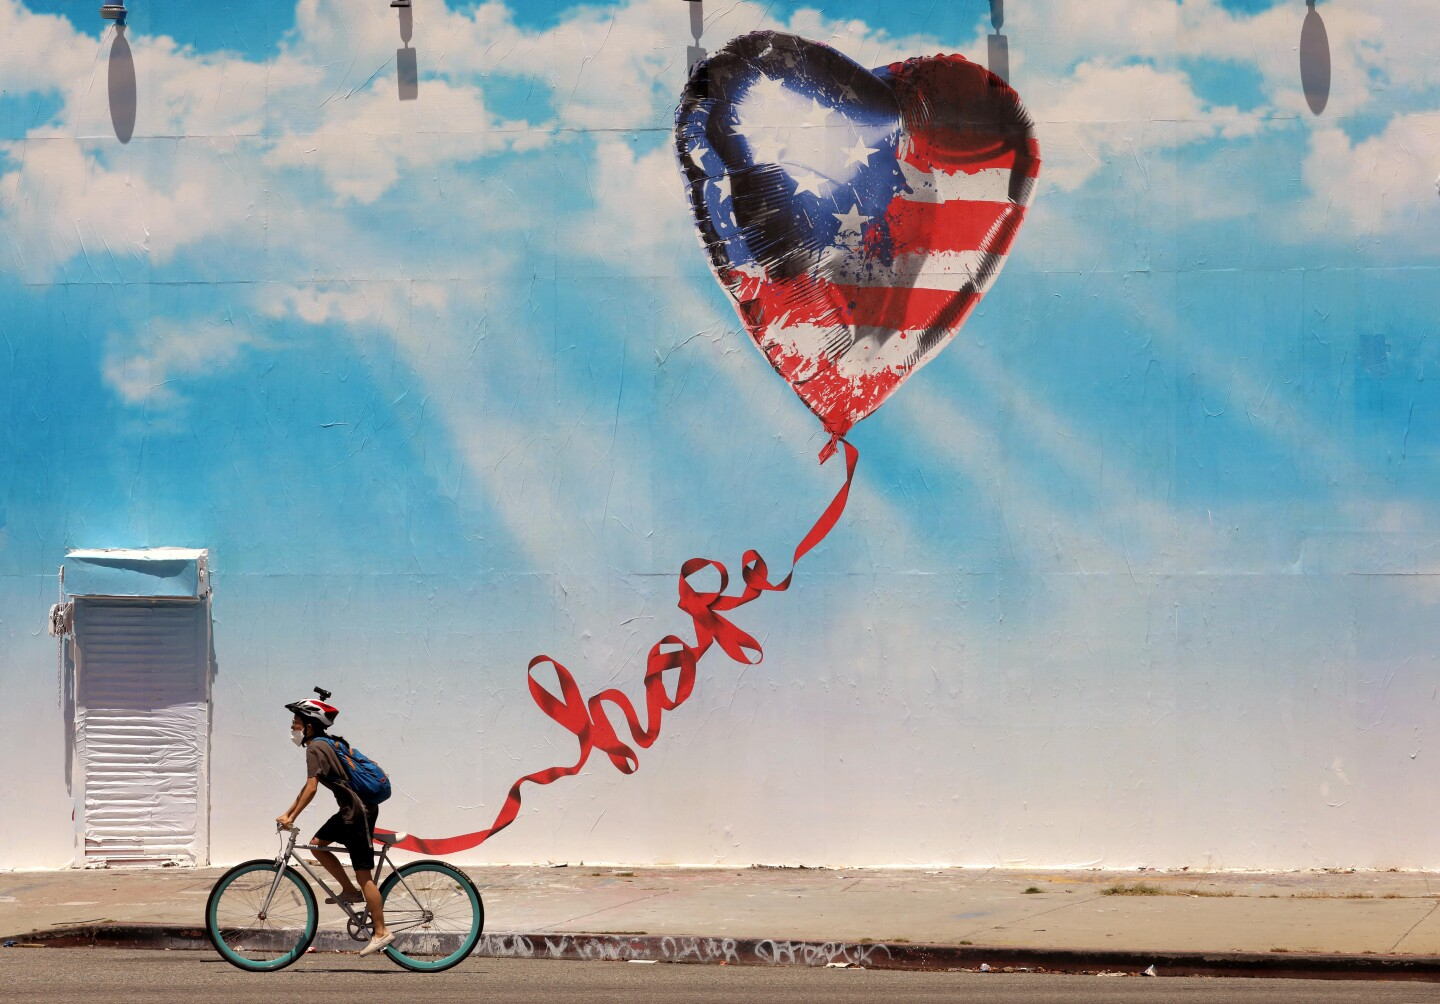 """A bicyclist wearing a face mask rides past a mural depicting a heart-shaped balloon patterned like the American flag flying in a blue sky. The balloon's string is twisted to read """"hope."""""""